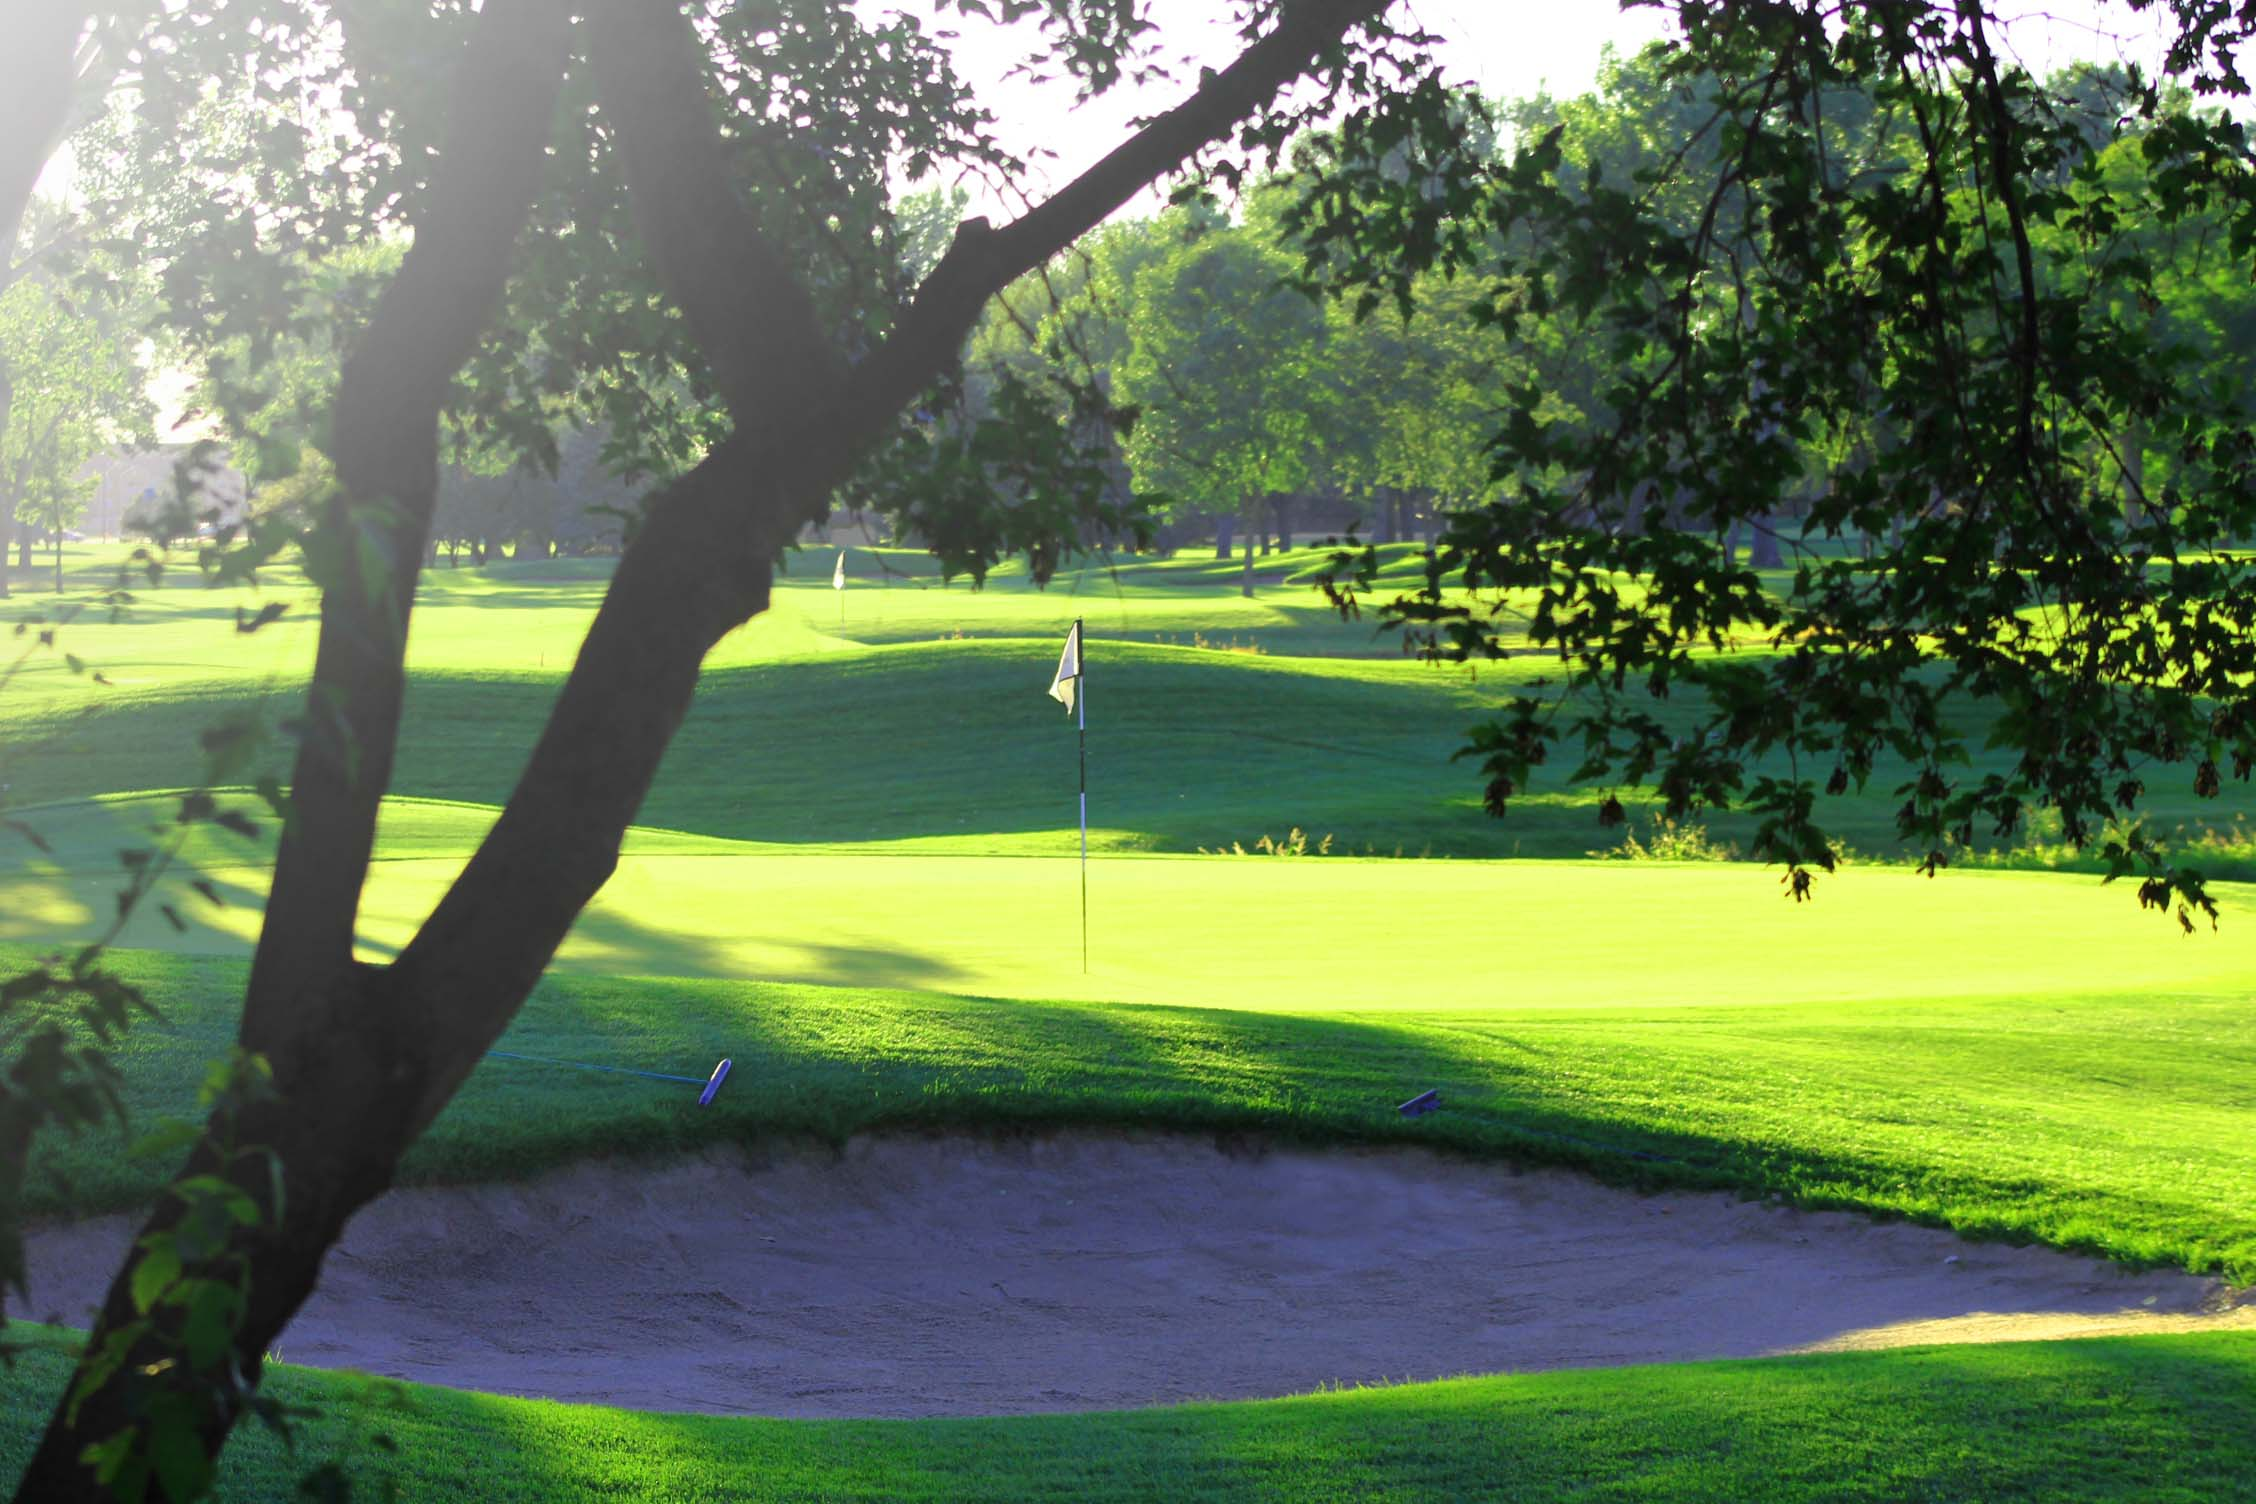 The Country Club of Sioux Falls golf course in South Dakota